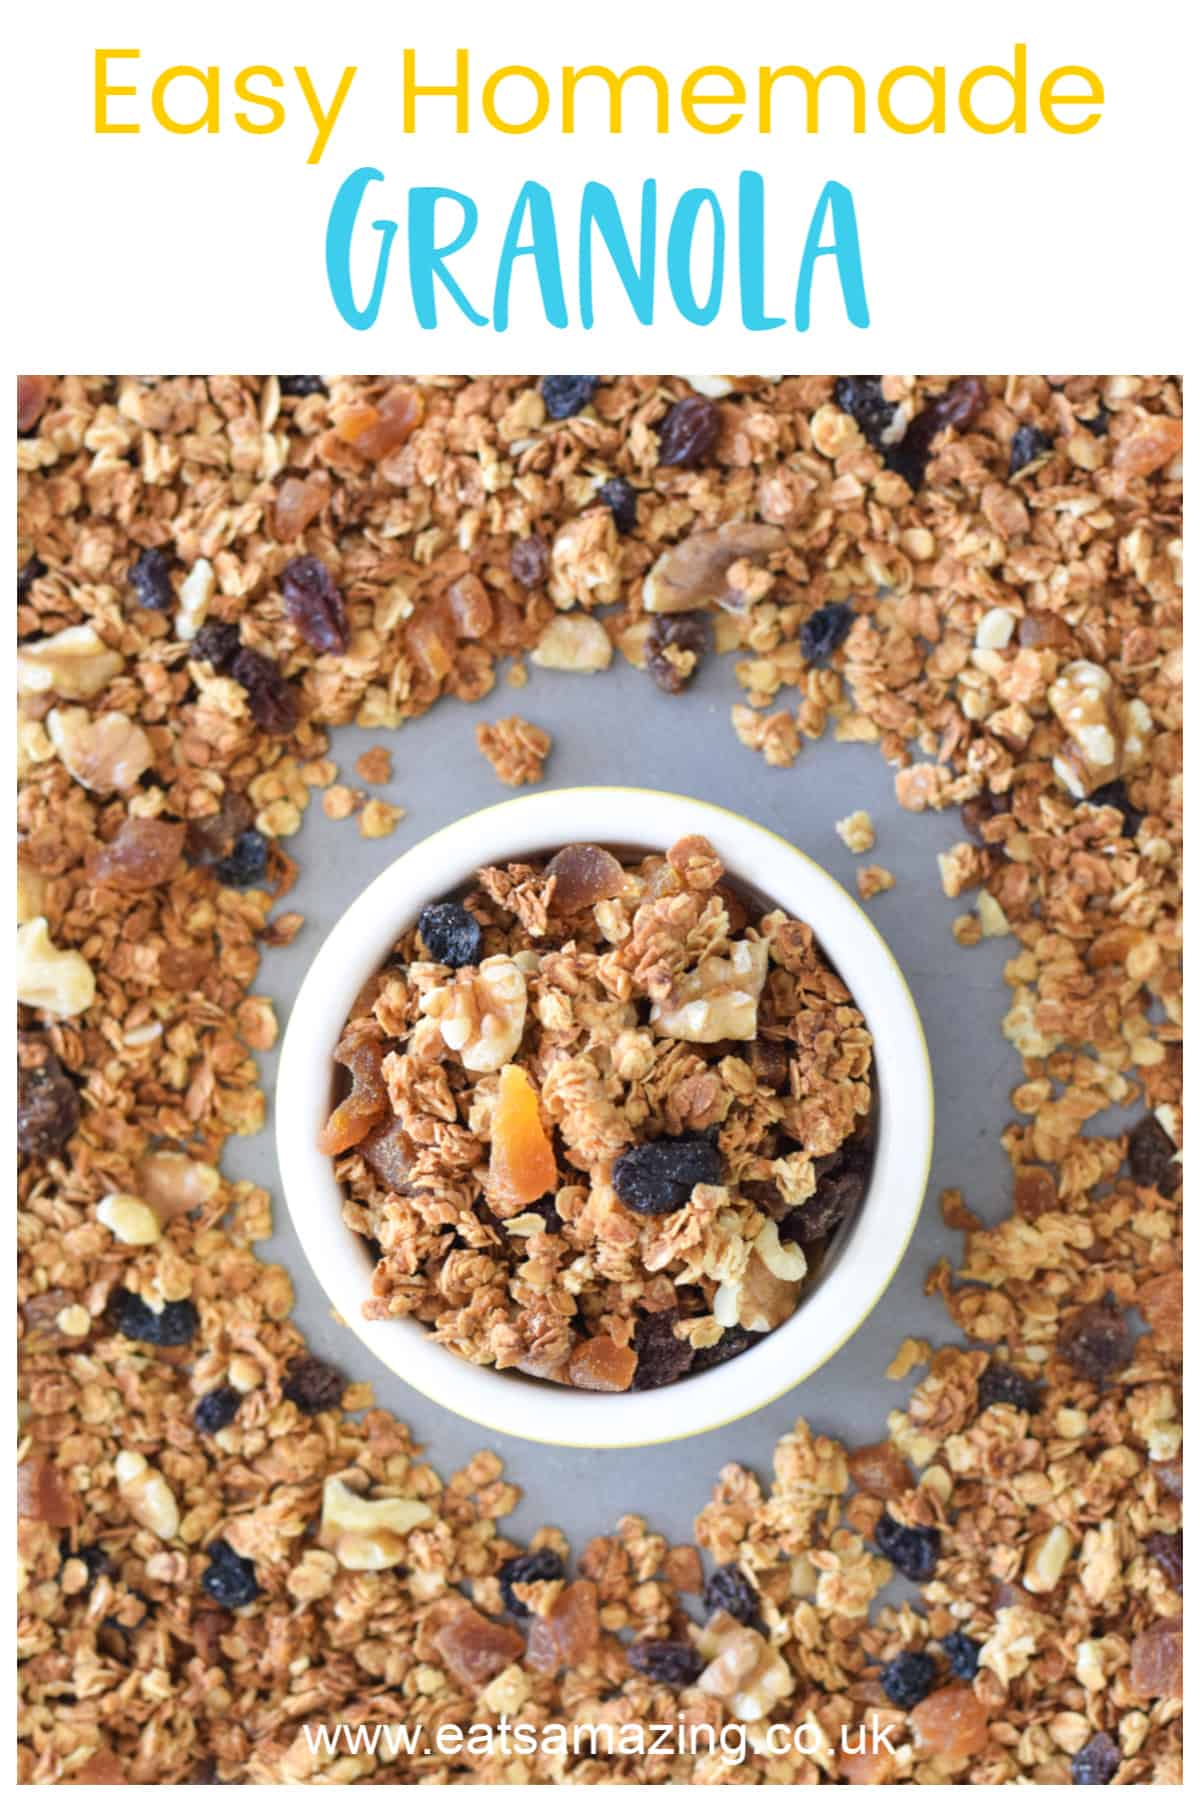 Super easy Granola recipe for kids - with child friendly recipe sheet and step by step photos